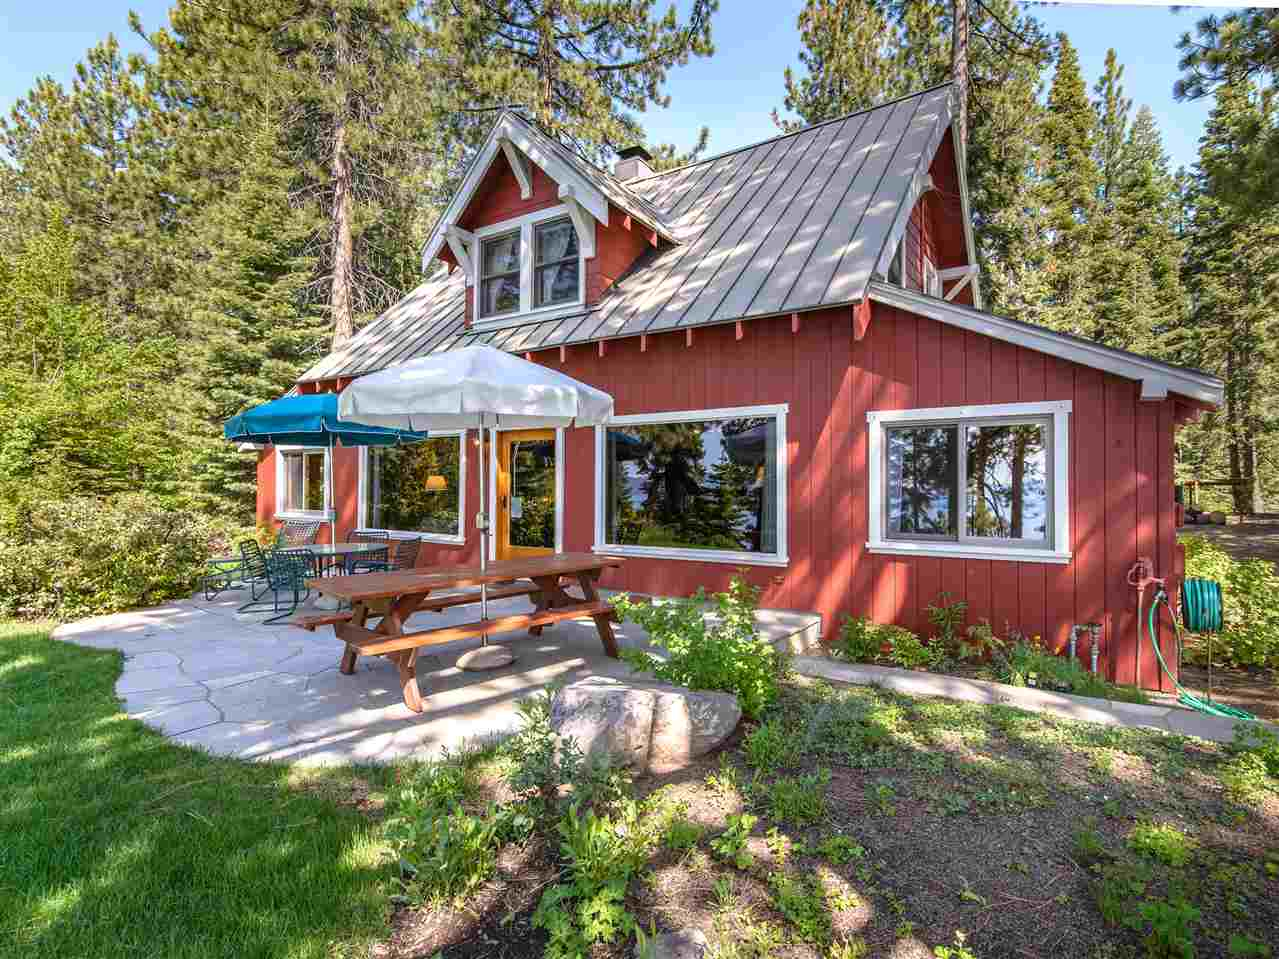 Single Family Home for Active at 2780 Lake Terrace Avenue 2780 Lake Terrace Avenue South Lake Tahoe, California 96145 United States